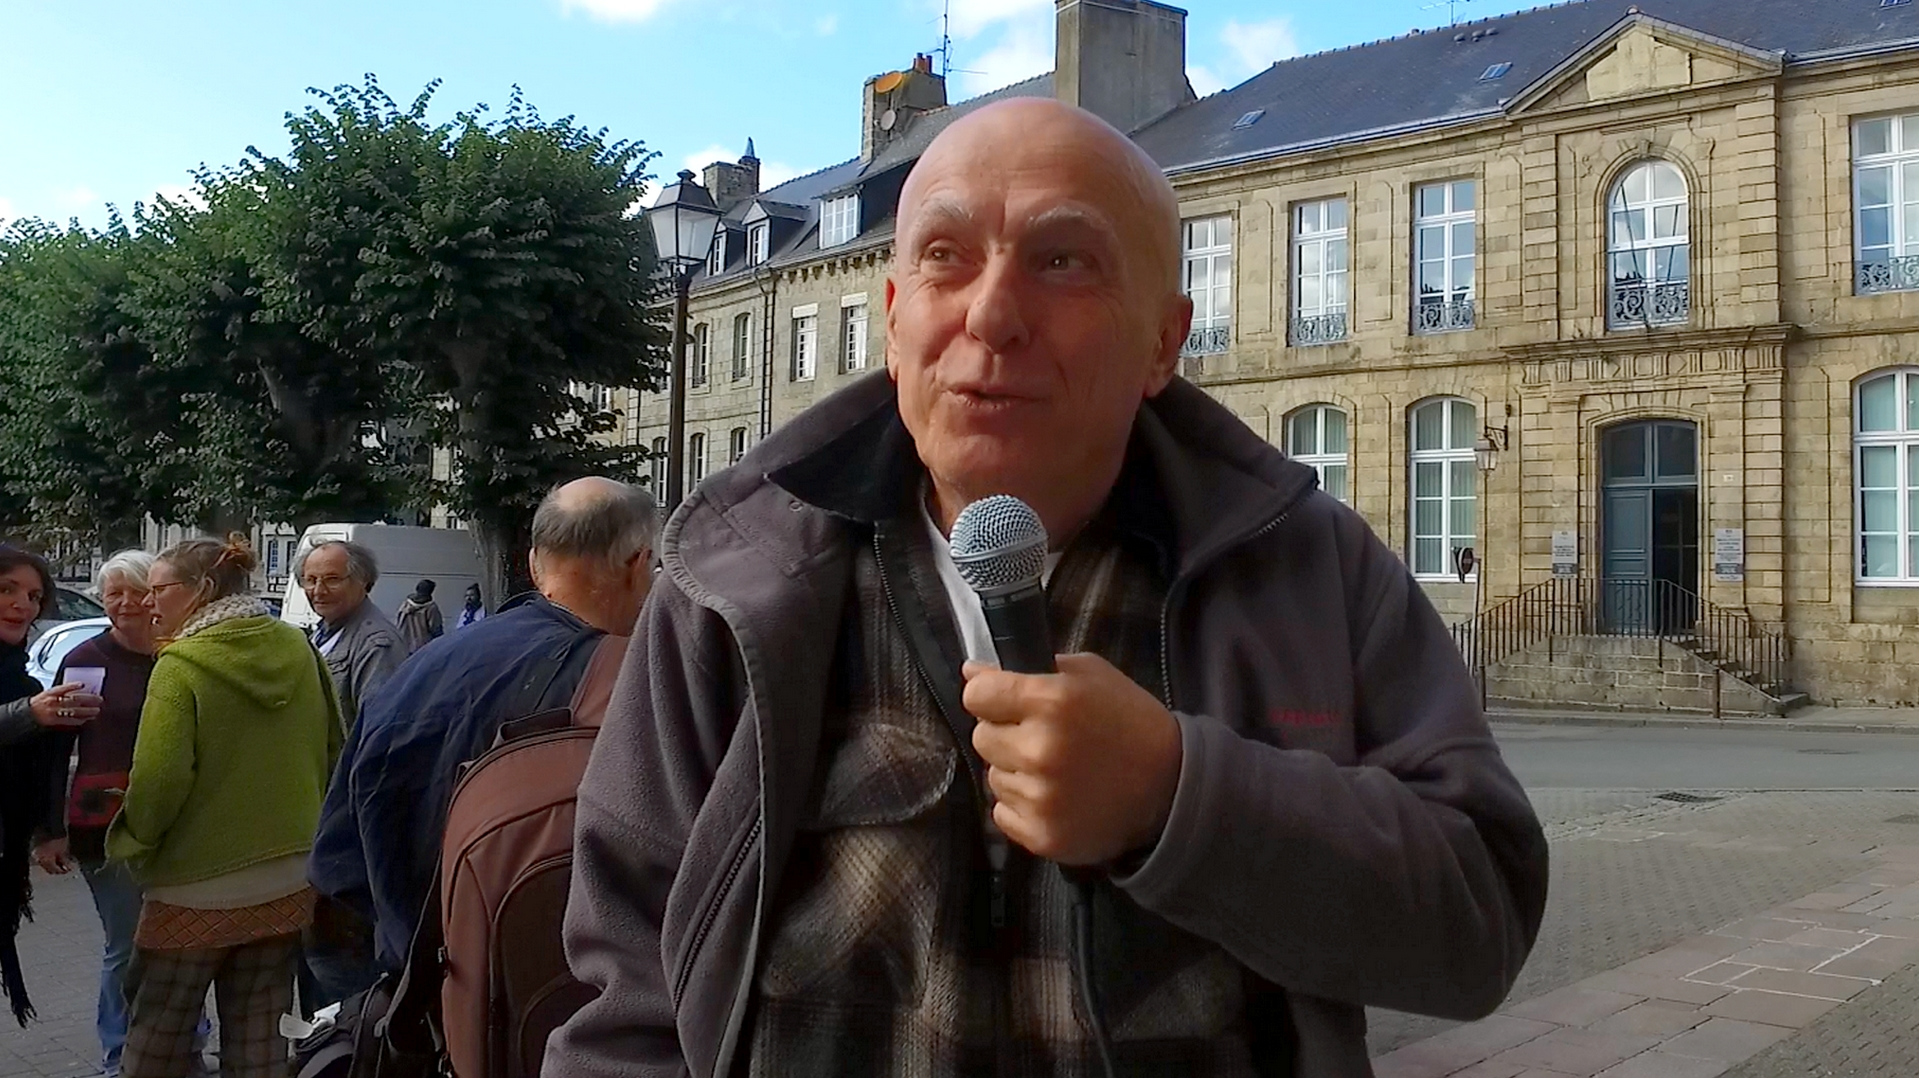 Interview de Fabrice Nicolino lors du procès des pesticides à Guingamp - La Déviation